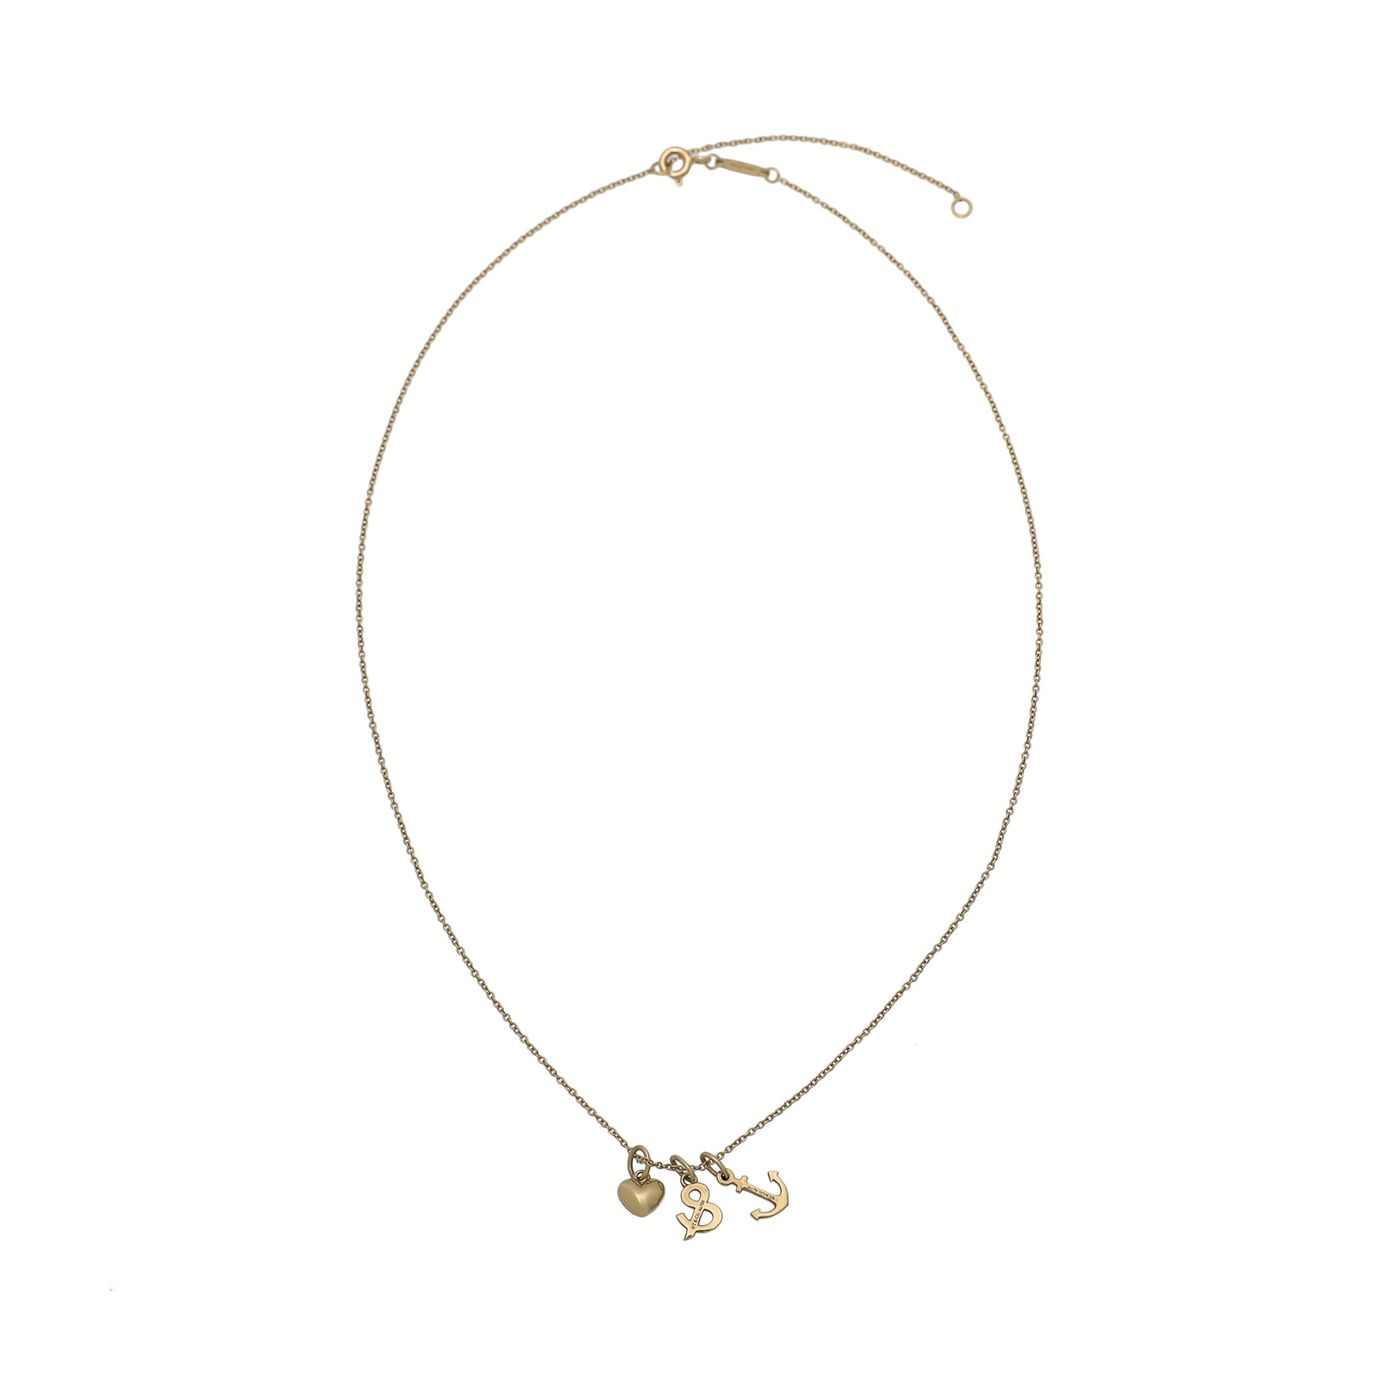 Tiffany & Co 18K Yellow Gold Heart Anchor Pendant Necklace